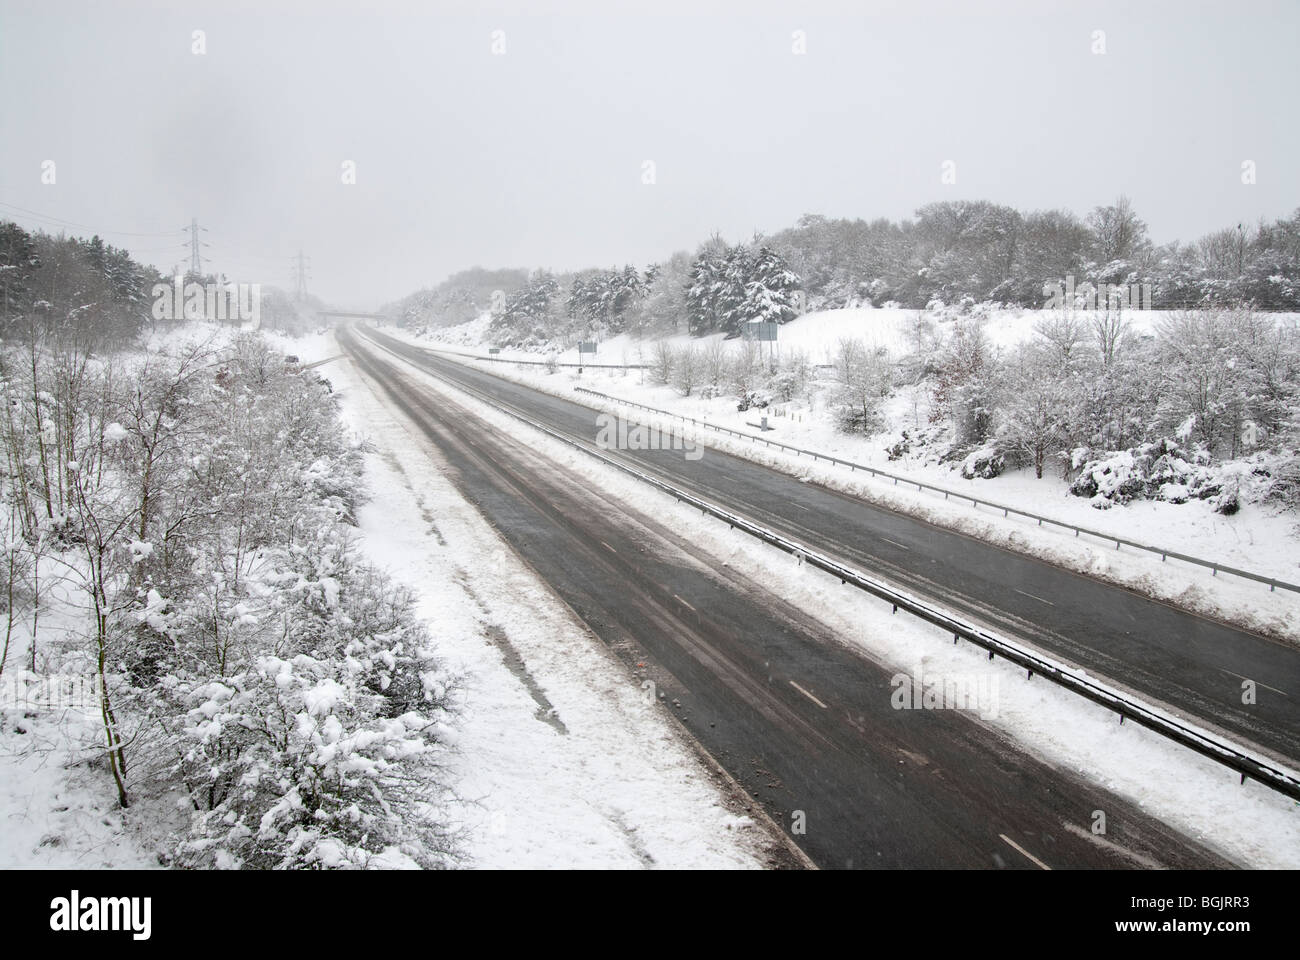 A3 open but no traffic during Major snow fall A3 area of hampshire january 2010 - Stock Image